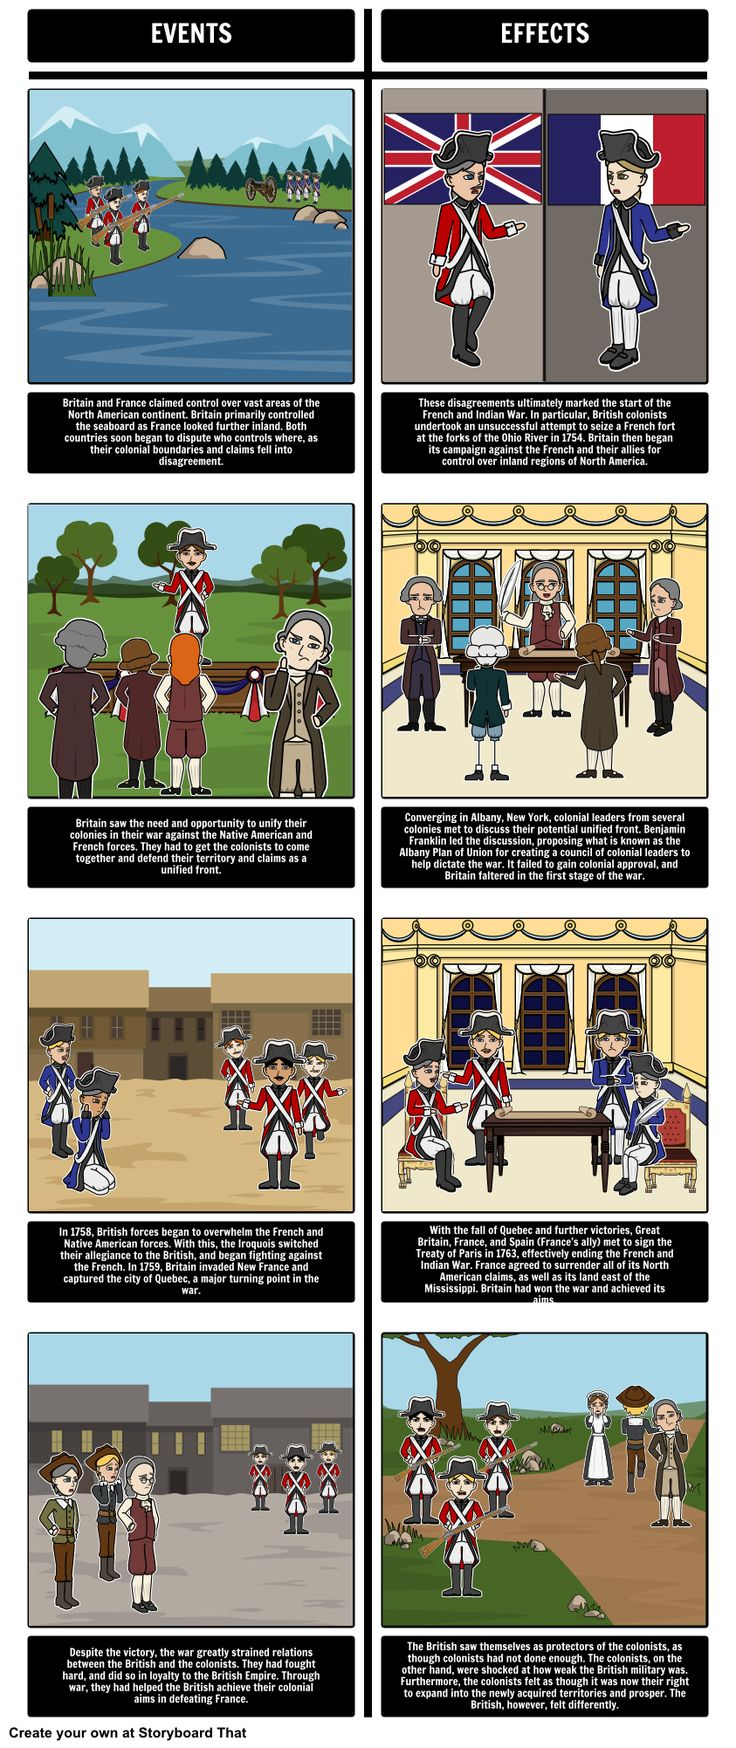 best ideas about causes of american revolution causes of the american revolution the french and n war by creating a t